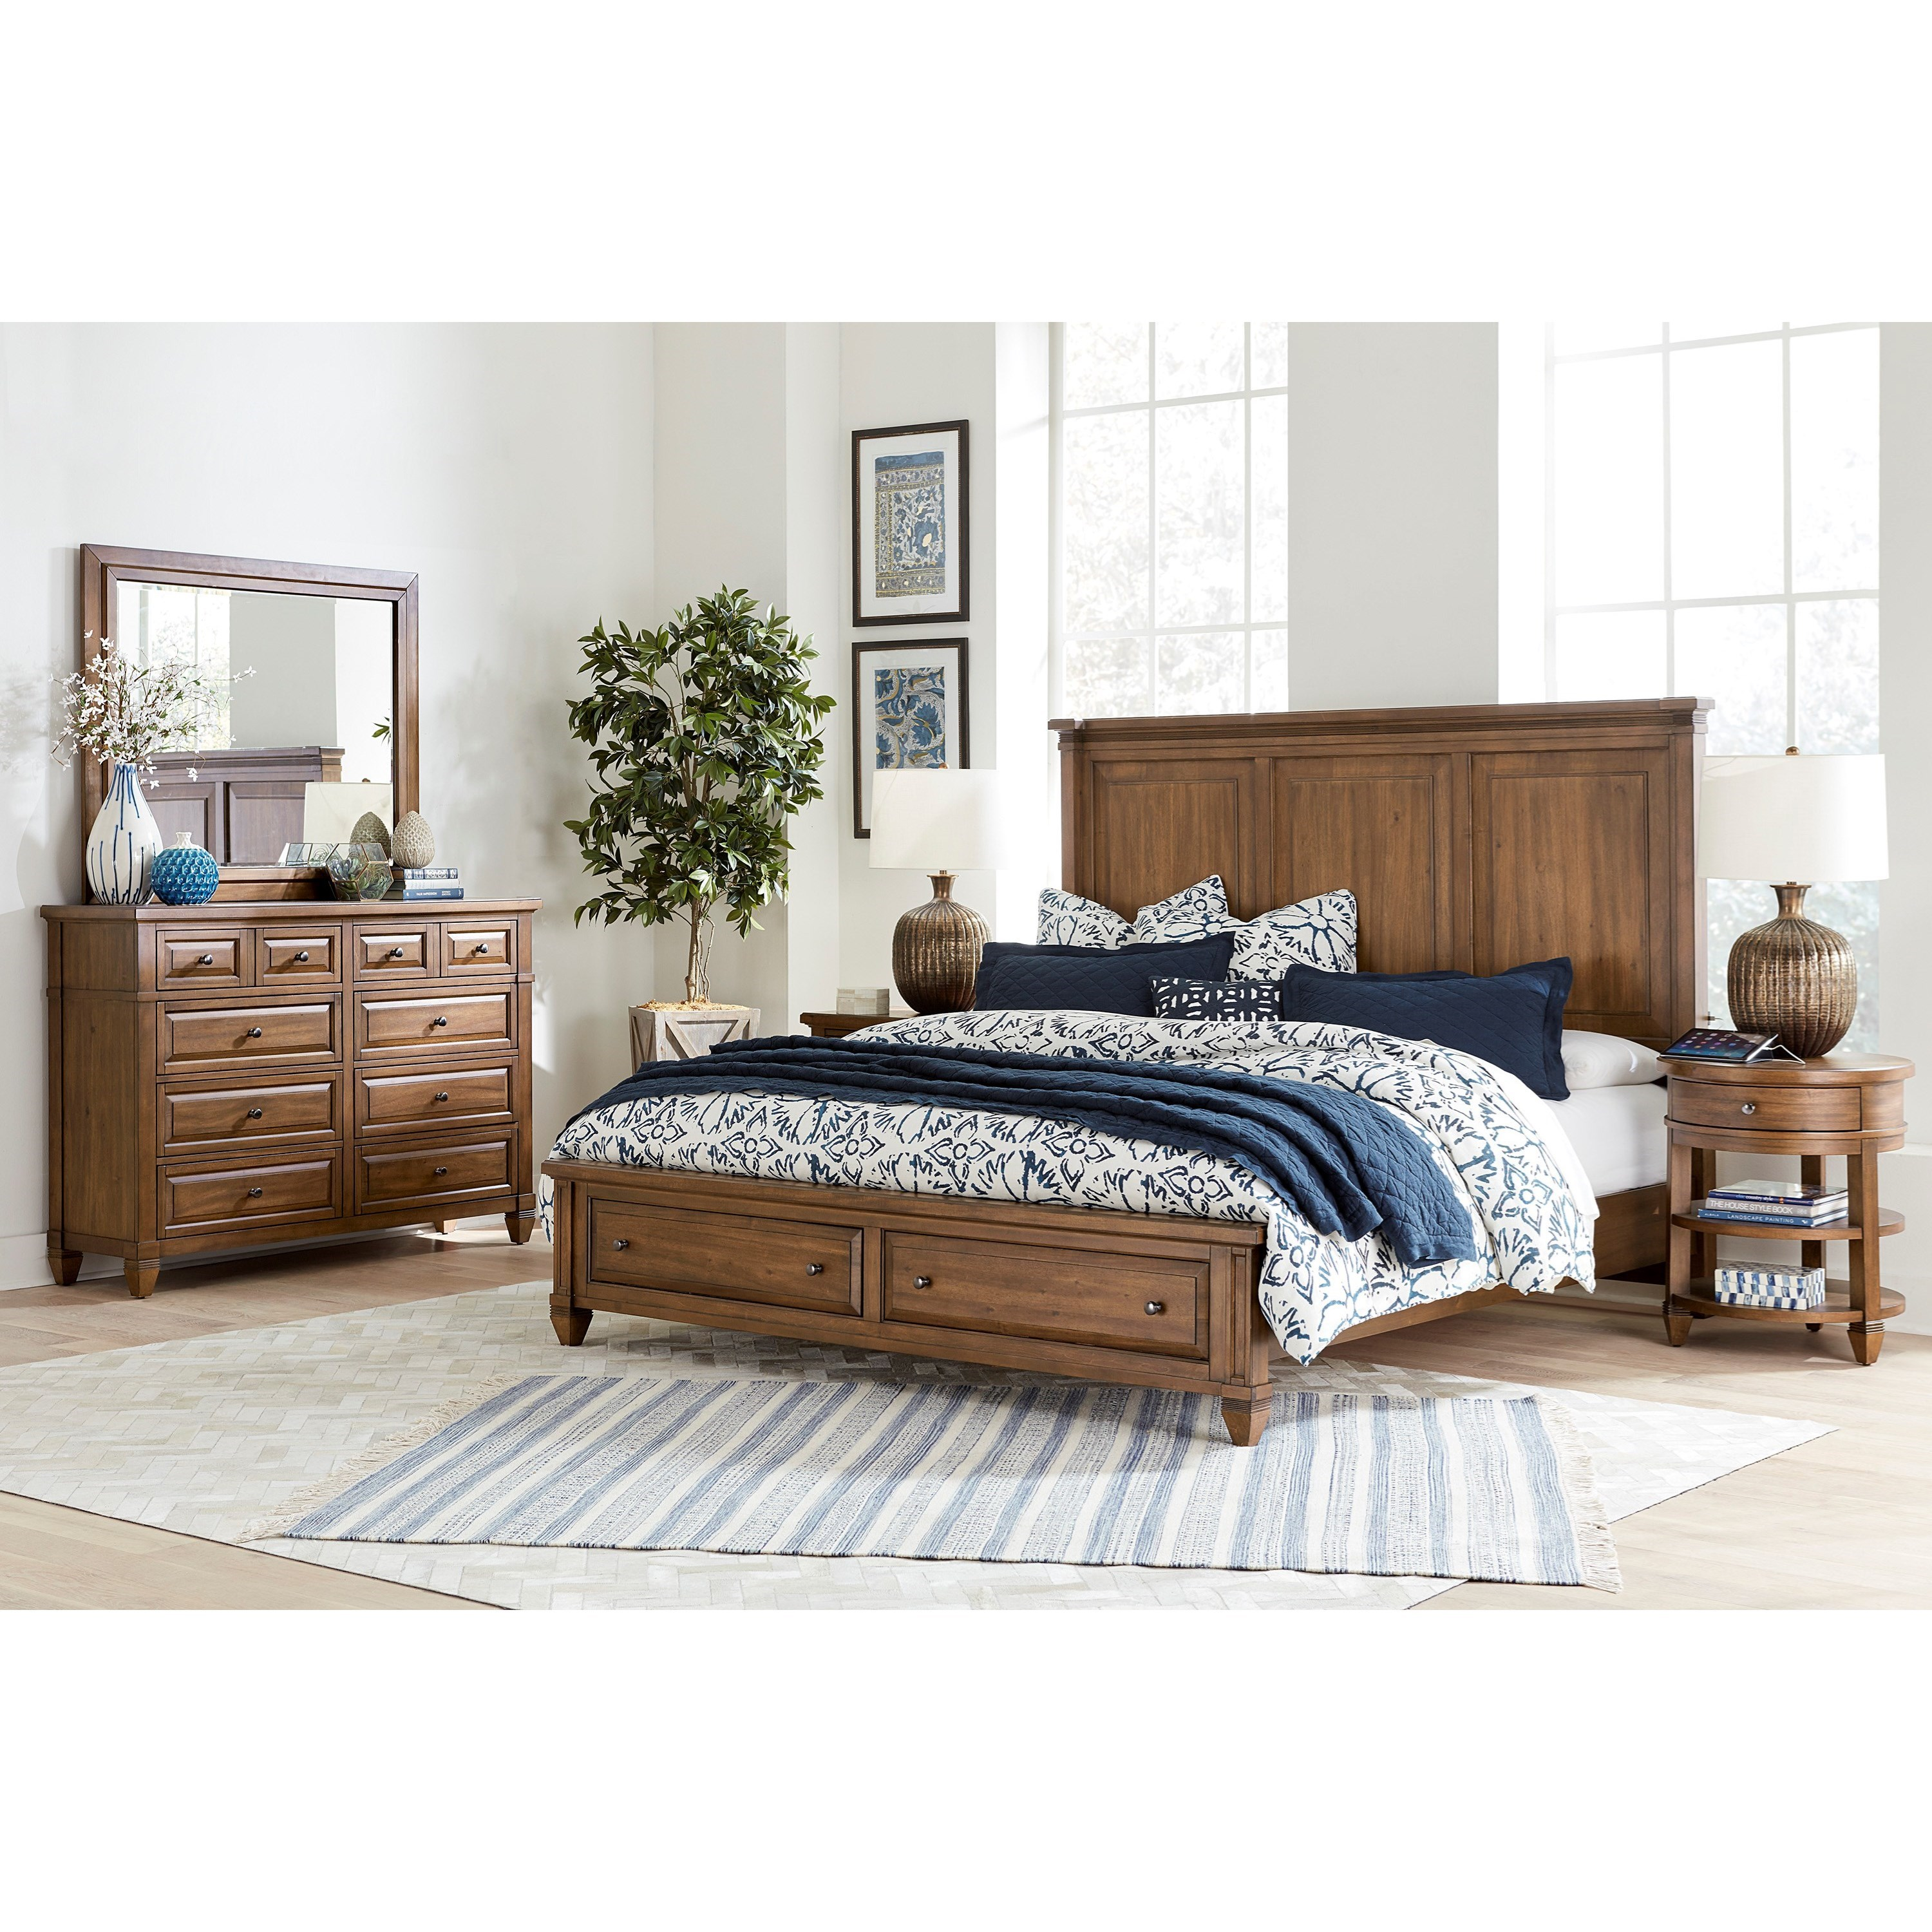 Thornton Queen Bedroom Group by Aspenhome at Baer's Furniture